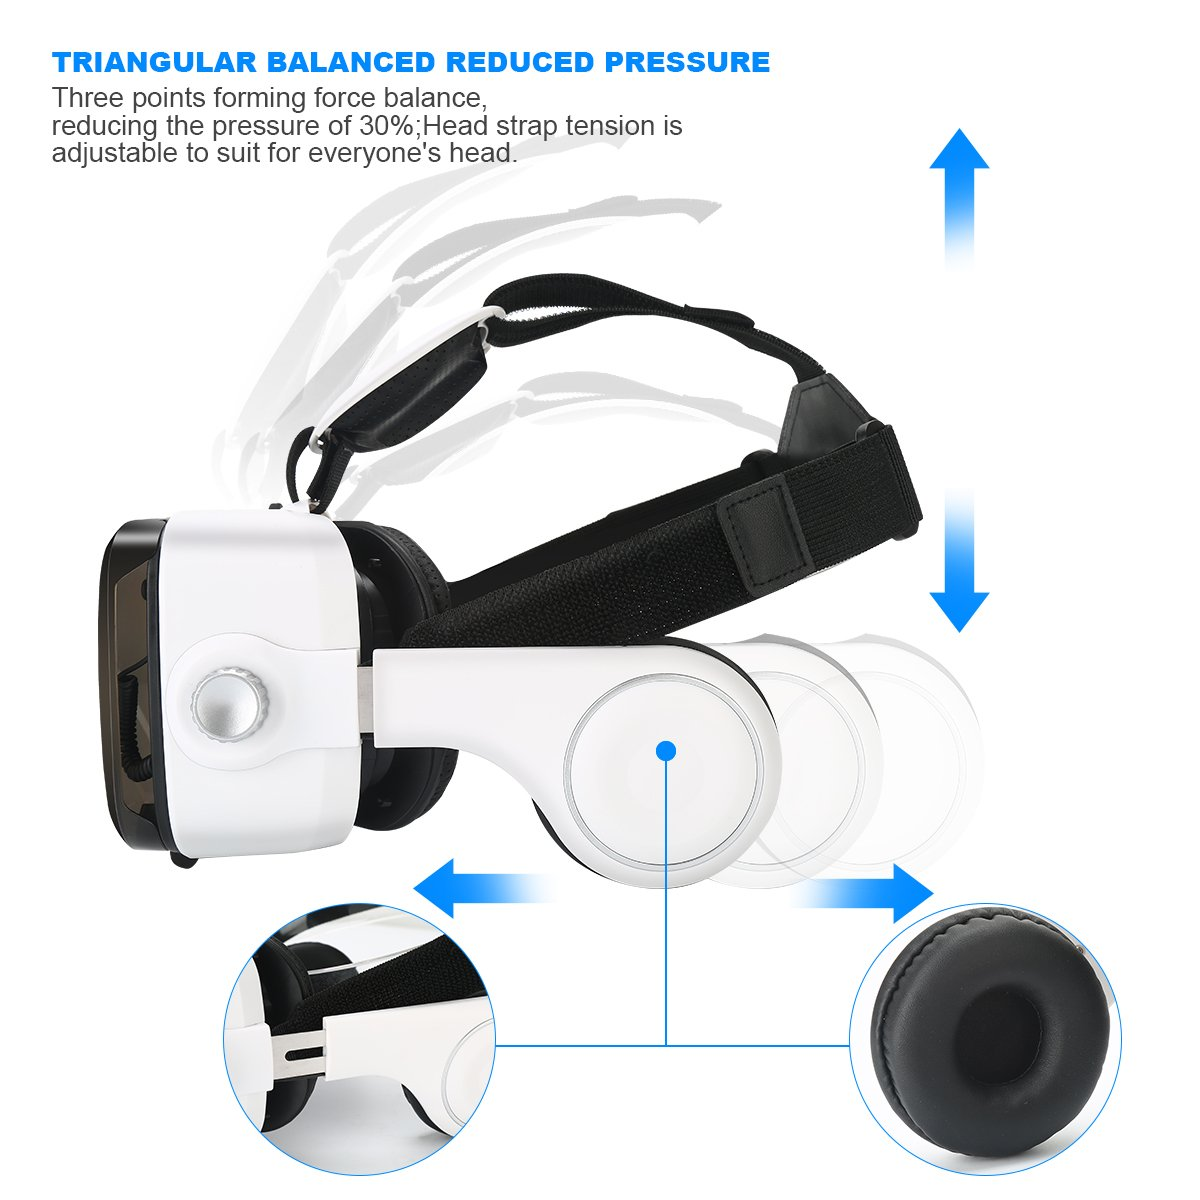 3D VR Glasses, YESSHOW VR Goggles Virtual Reality Headset Box for 3D Movies and VR Games with Remote Control Compatible with iPhone X /8/8 Plus 7/7 Plus/6S/ 6 Samsung S8/S7 and Other 4.0''-6.0'' phones by YESSHOW (Image #4)